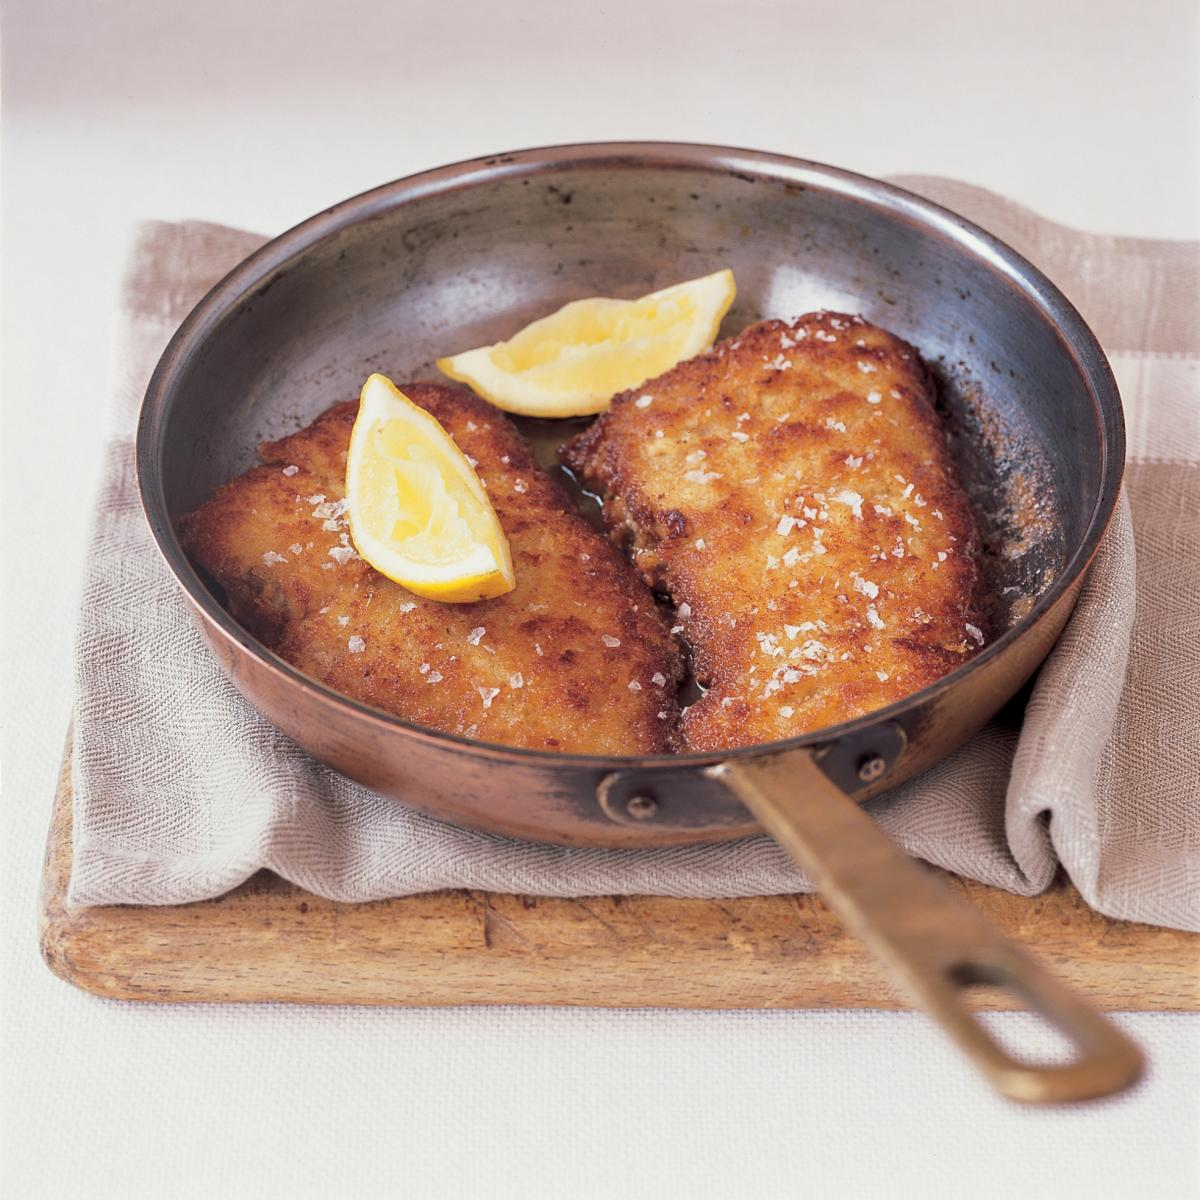 A picture of Delia's Veal Milanese recipe